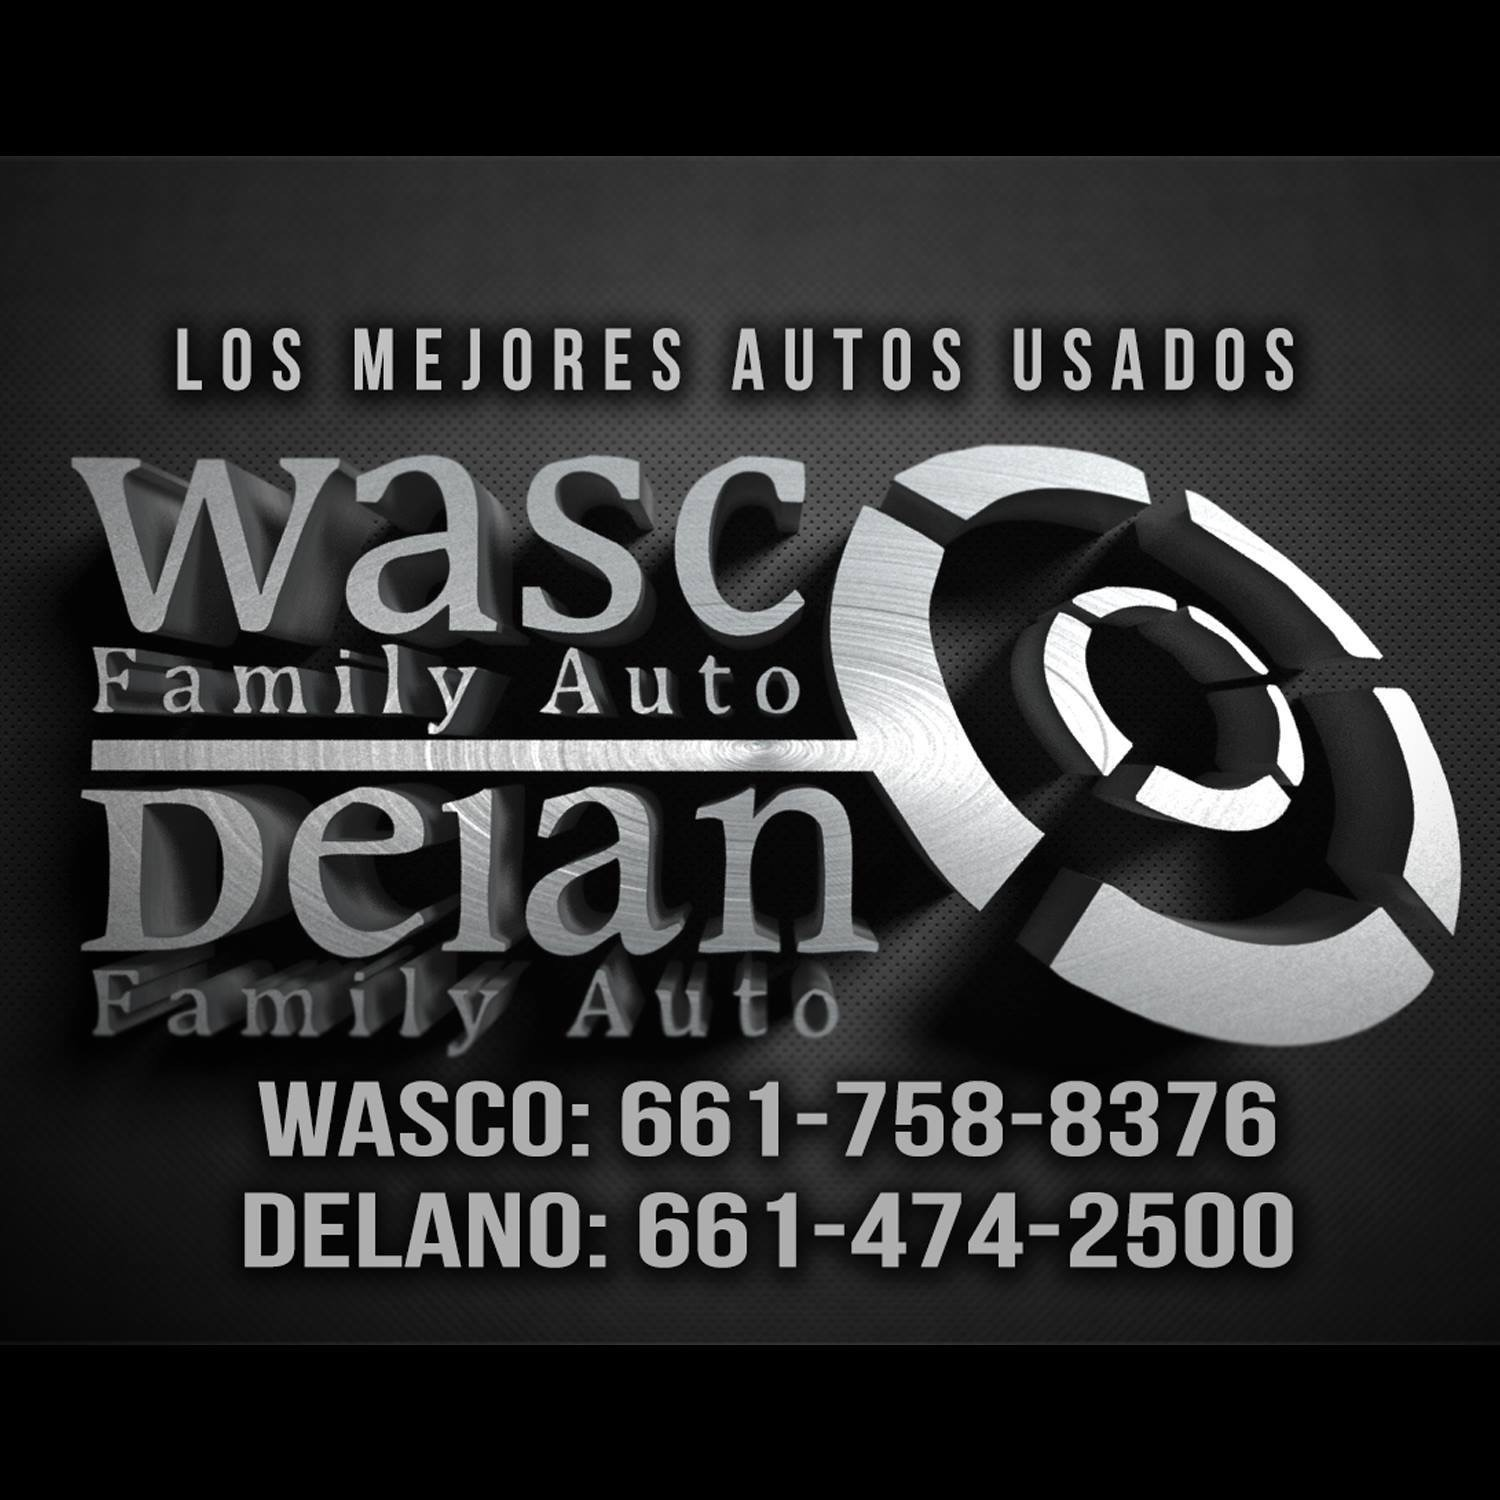 Wasco Family Auto